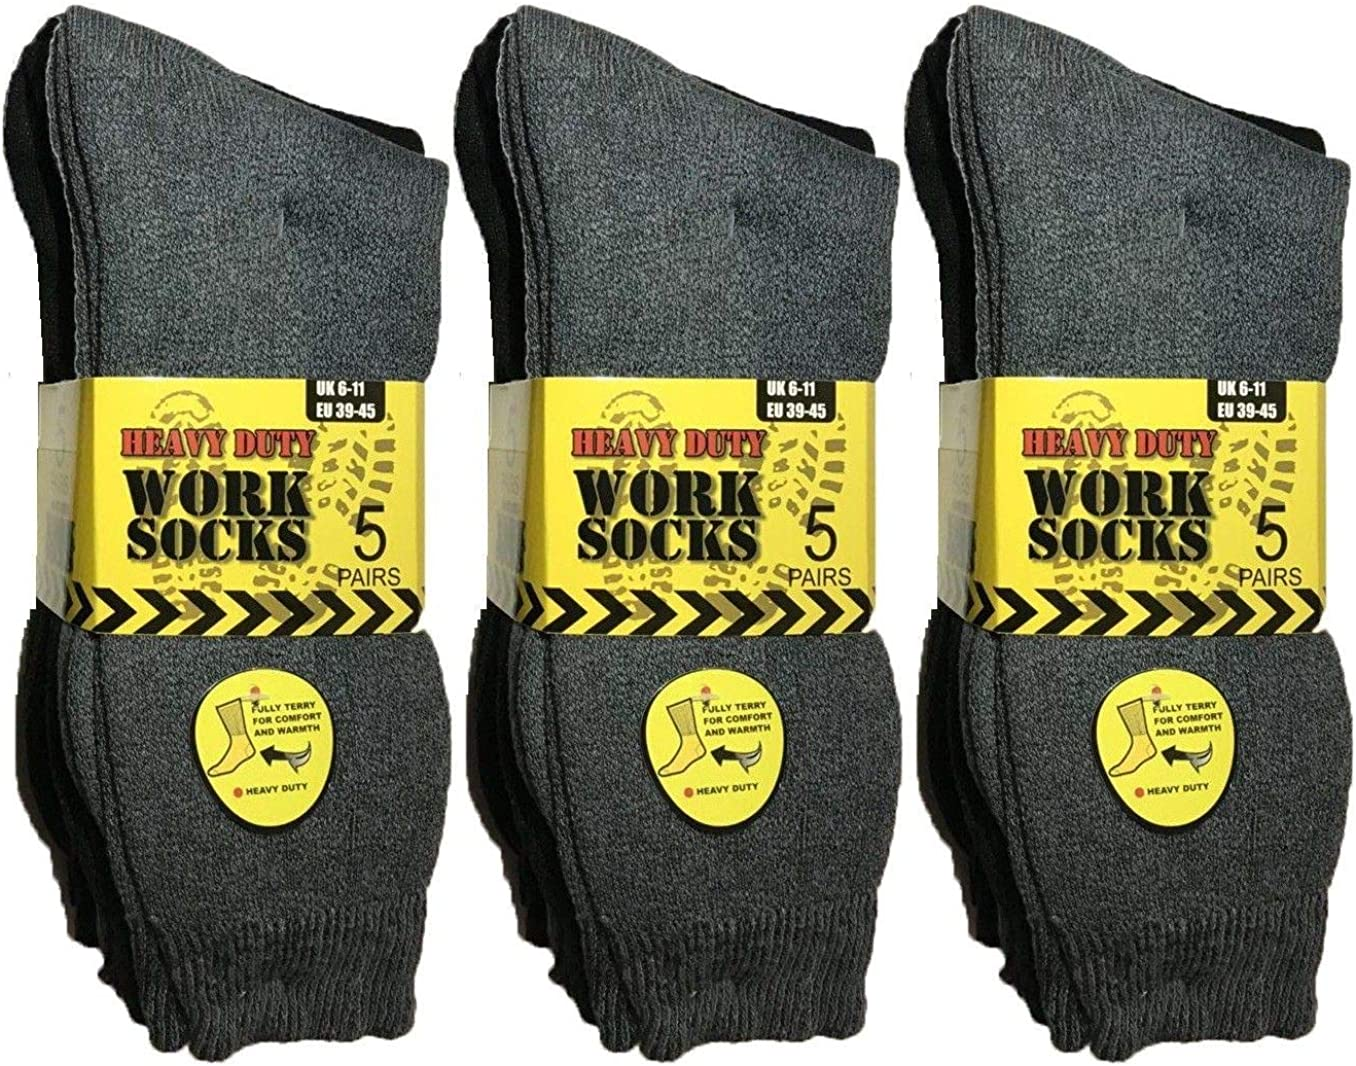 6 Pairs Mens Thermal Heavy Duty Work Socks Shoe Size UK 6-11 Safety Boot